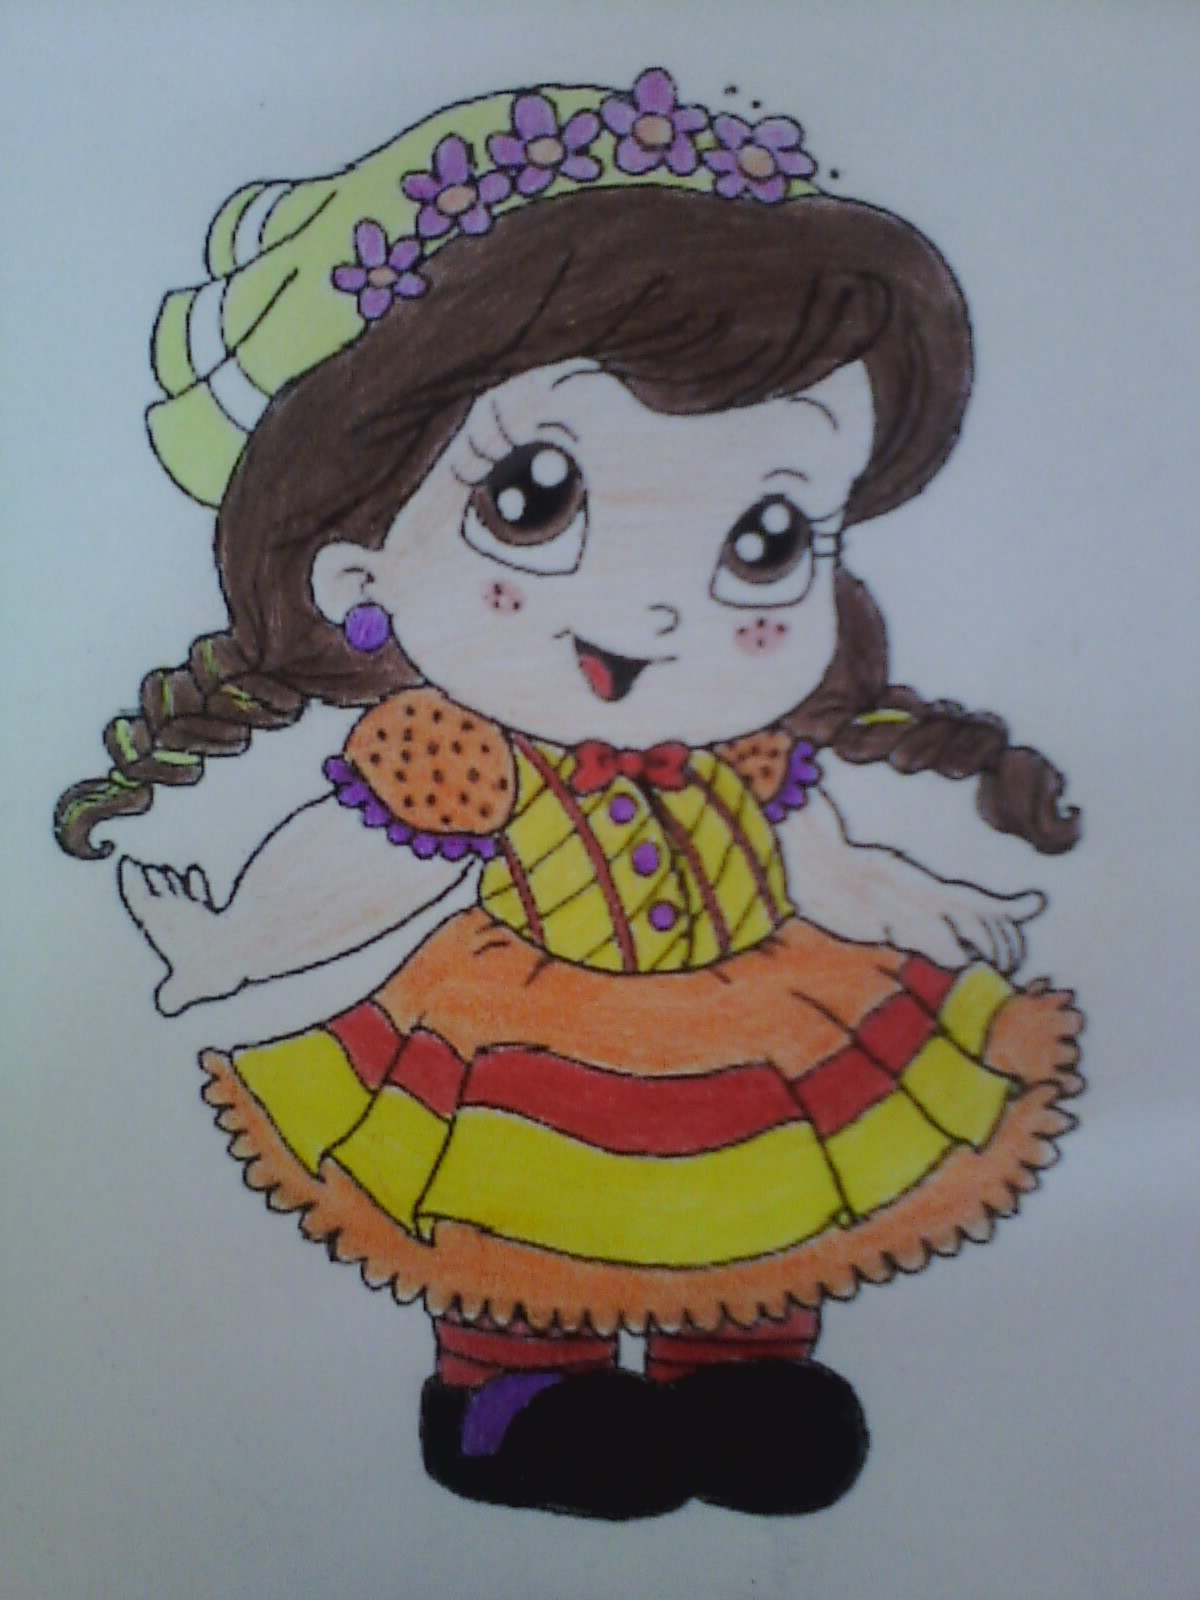 Saint John's Party costume (we call it Festa Junina in portuguese) :)